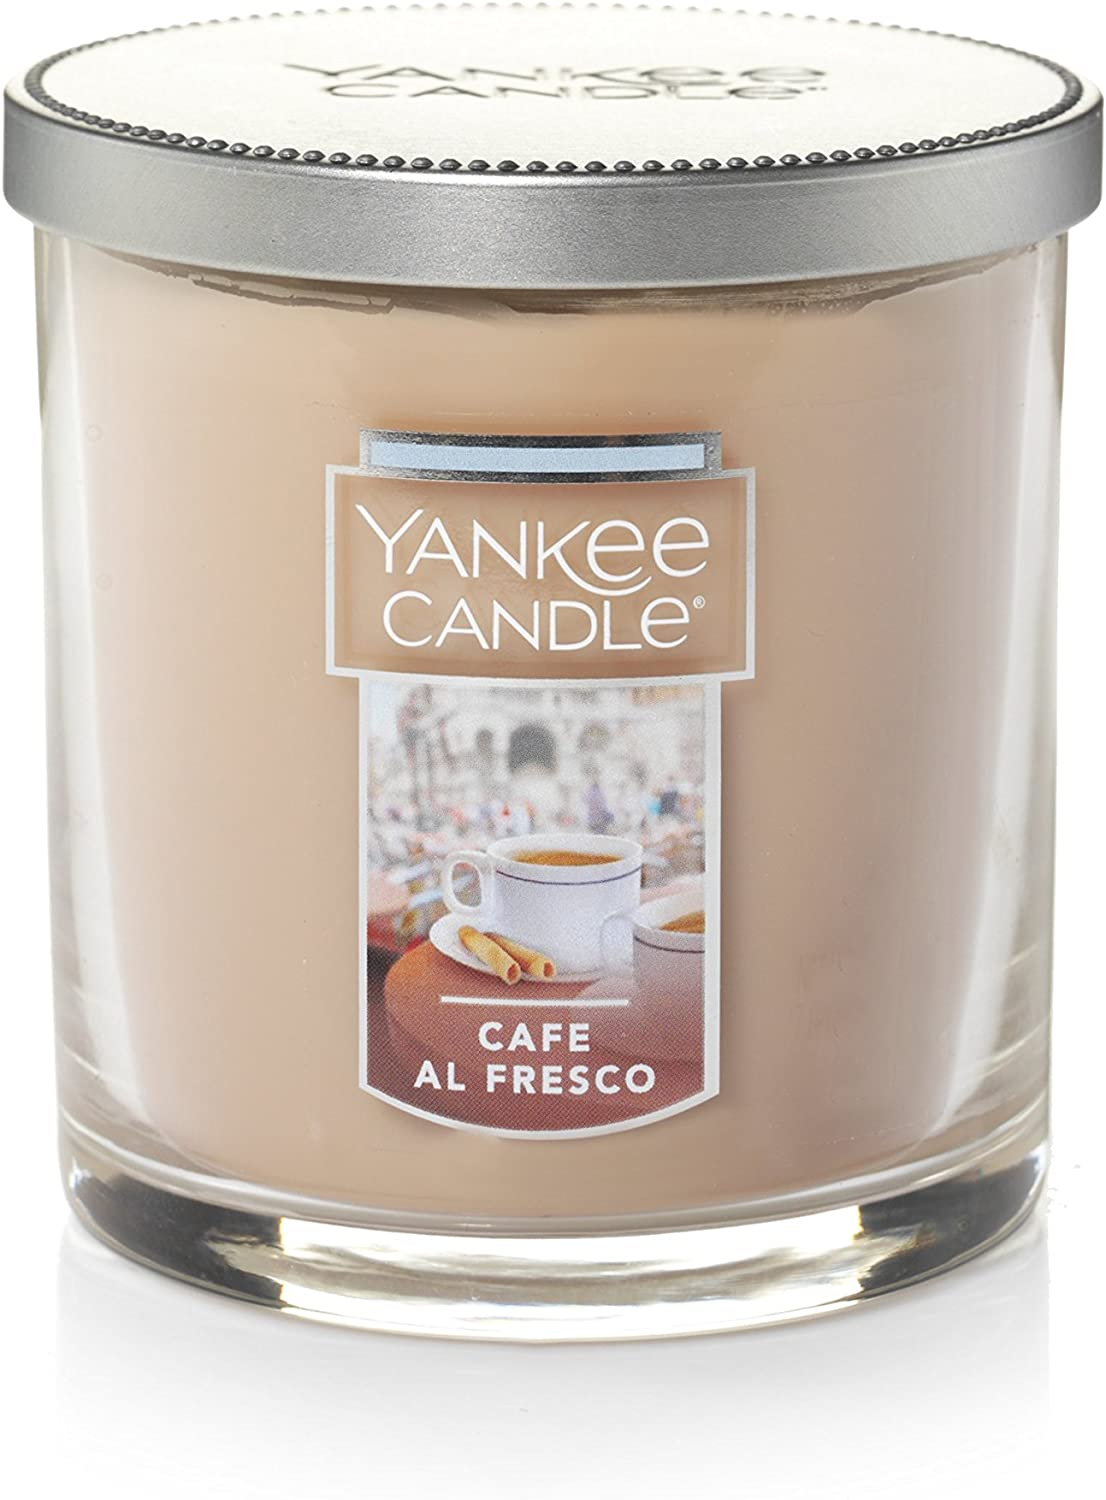 Best Scented Candles During Winters Yankee Candle Small Tumbler Candle, Café Al Fresco: Home &  Kitchen